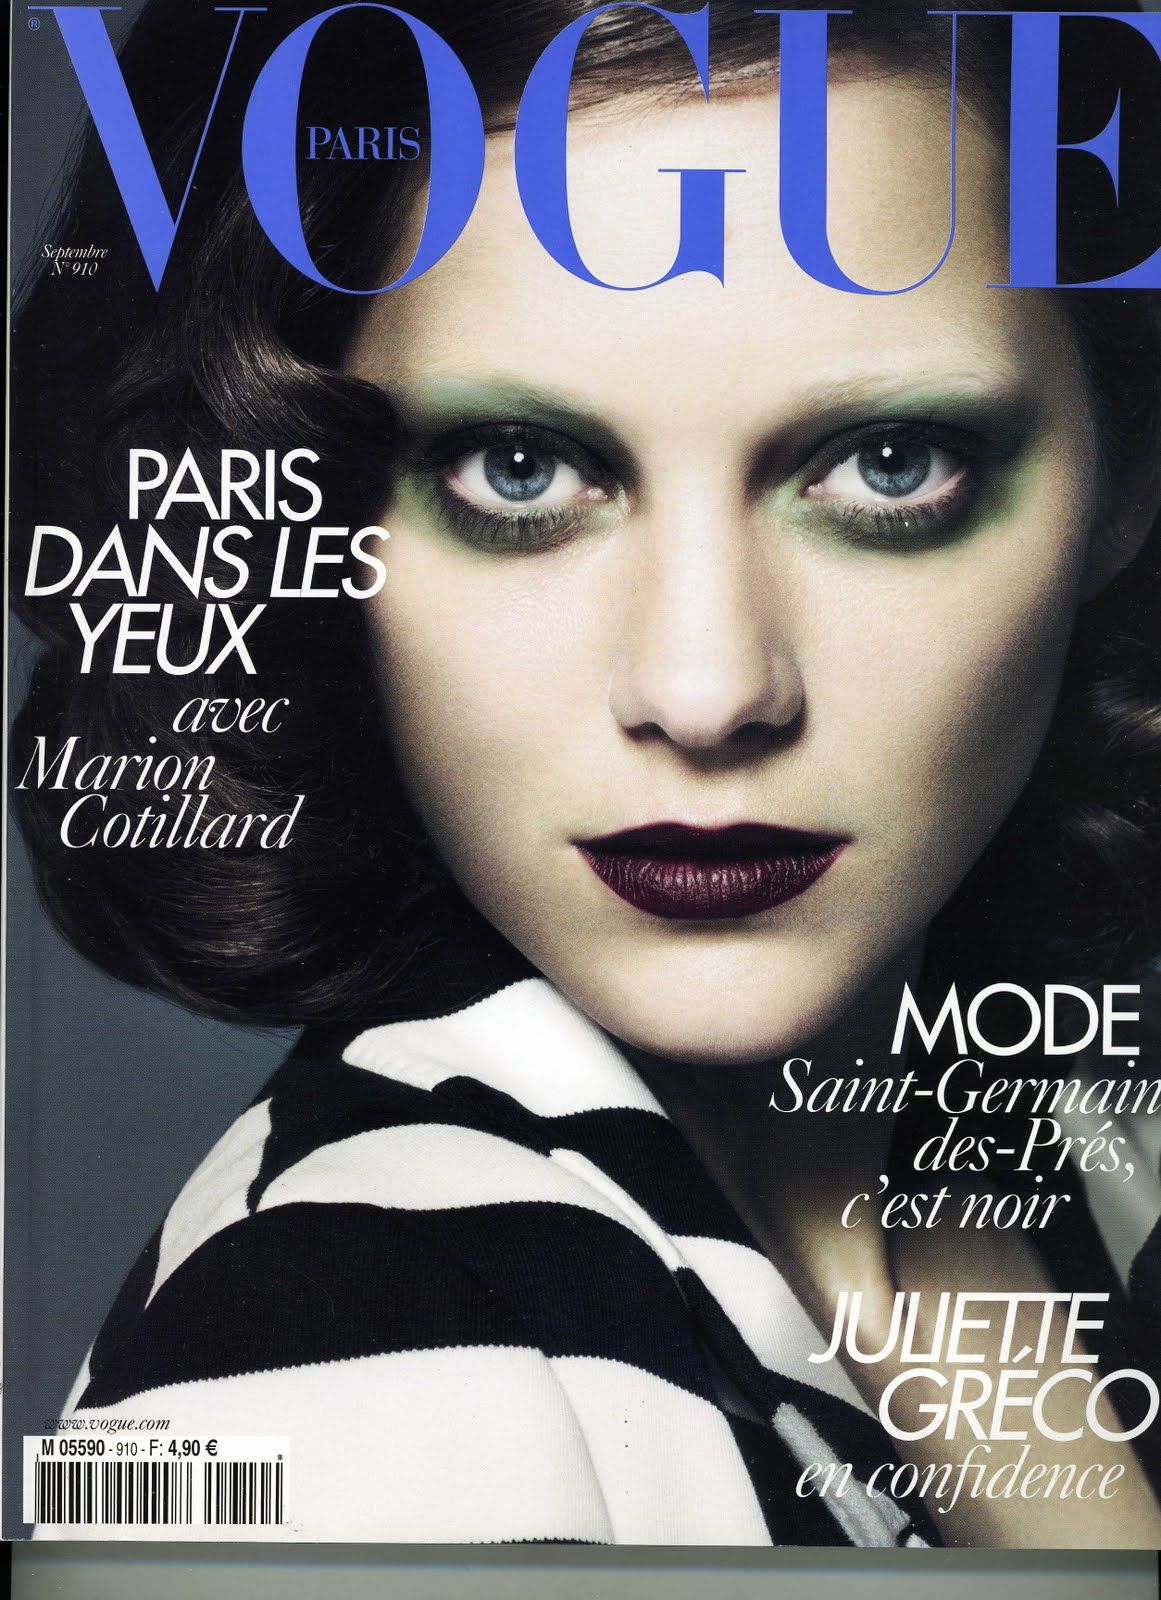 french vogue magazine covers editor magazines france makeup paris marion cotillard fr barrington chief